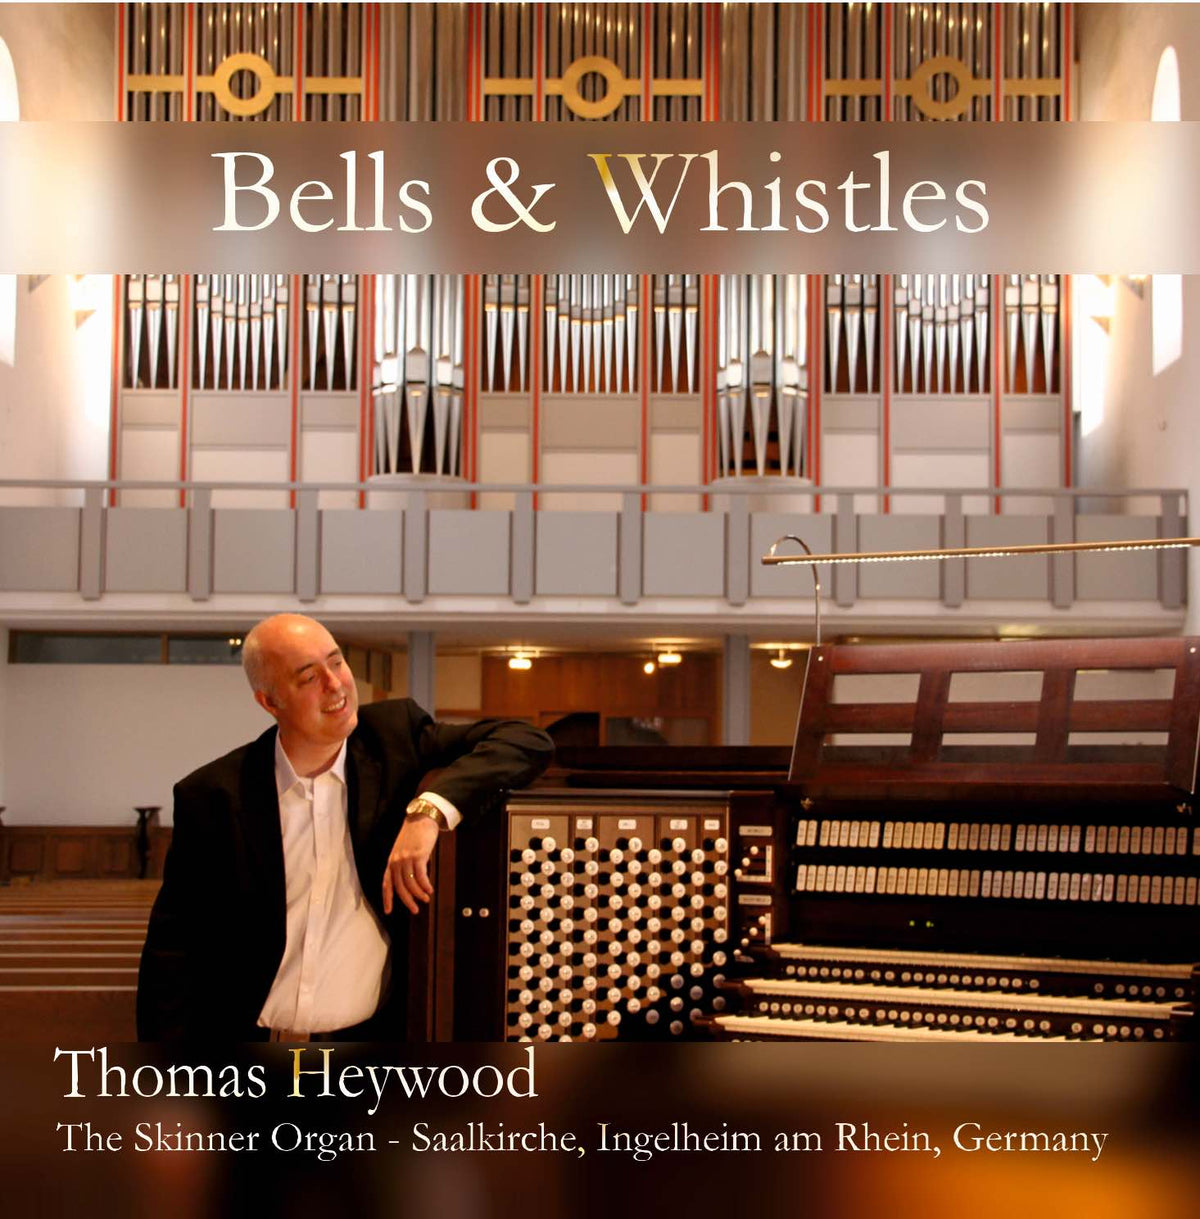 Bells & Whistles (MP3 Album) | Thomas Heywood | Concert Organ International